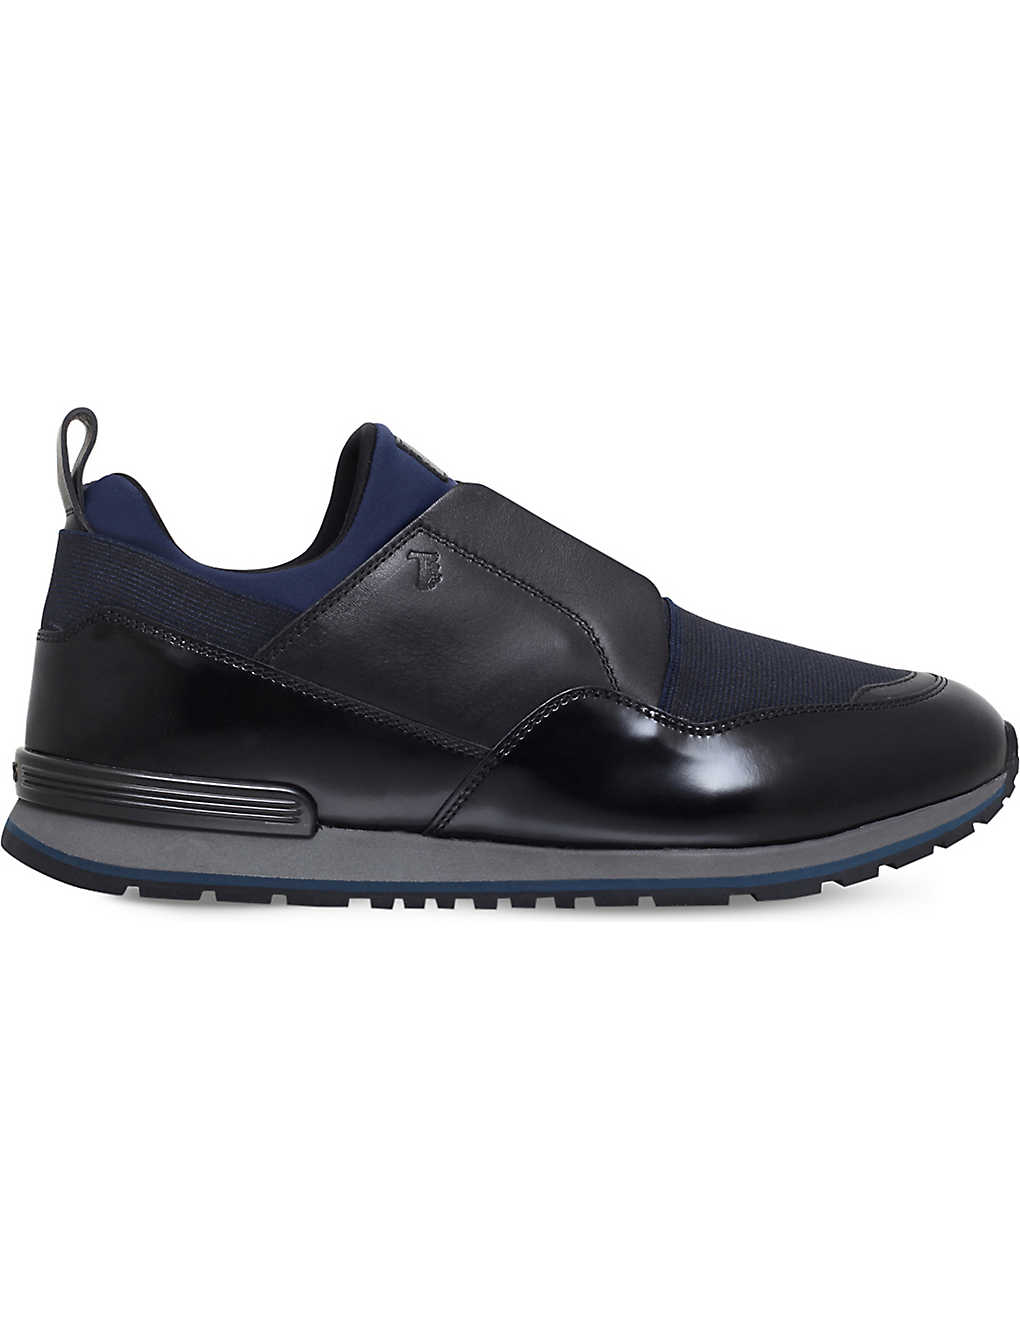 bacc816887 TODS - Neoprene and leather trainers | Selfridges.com